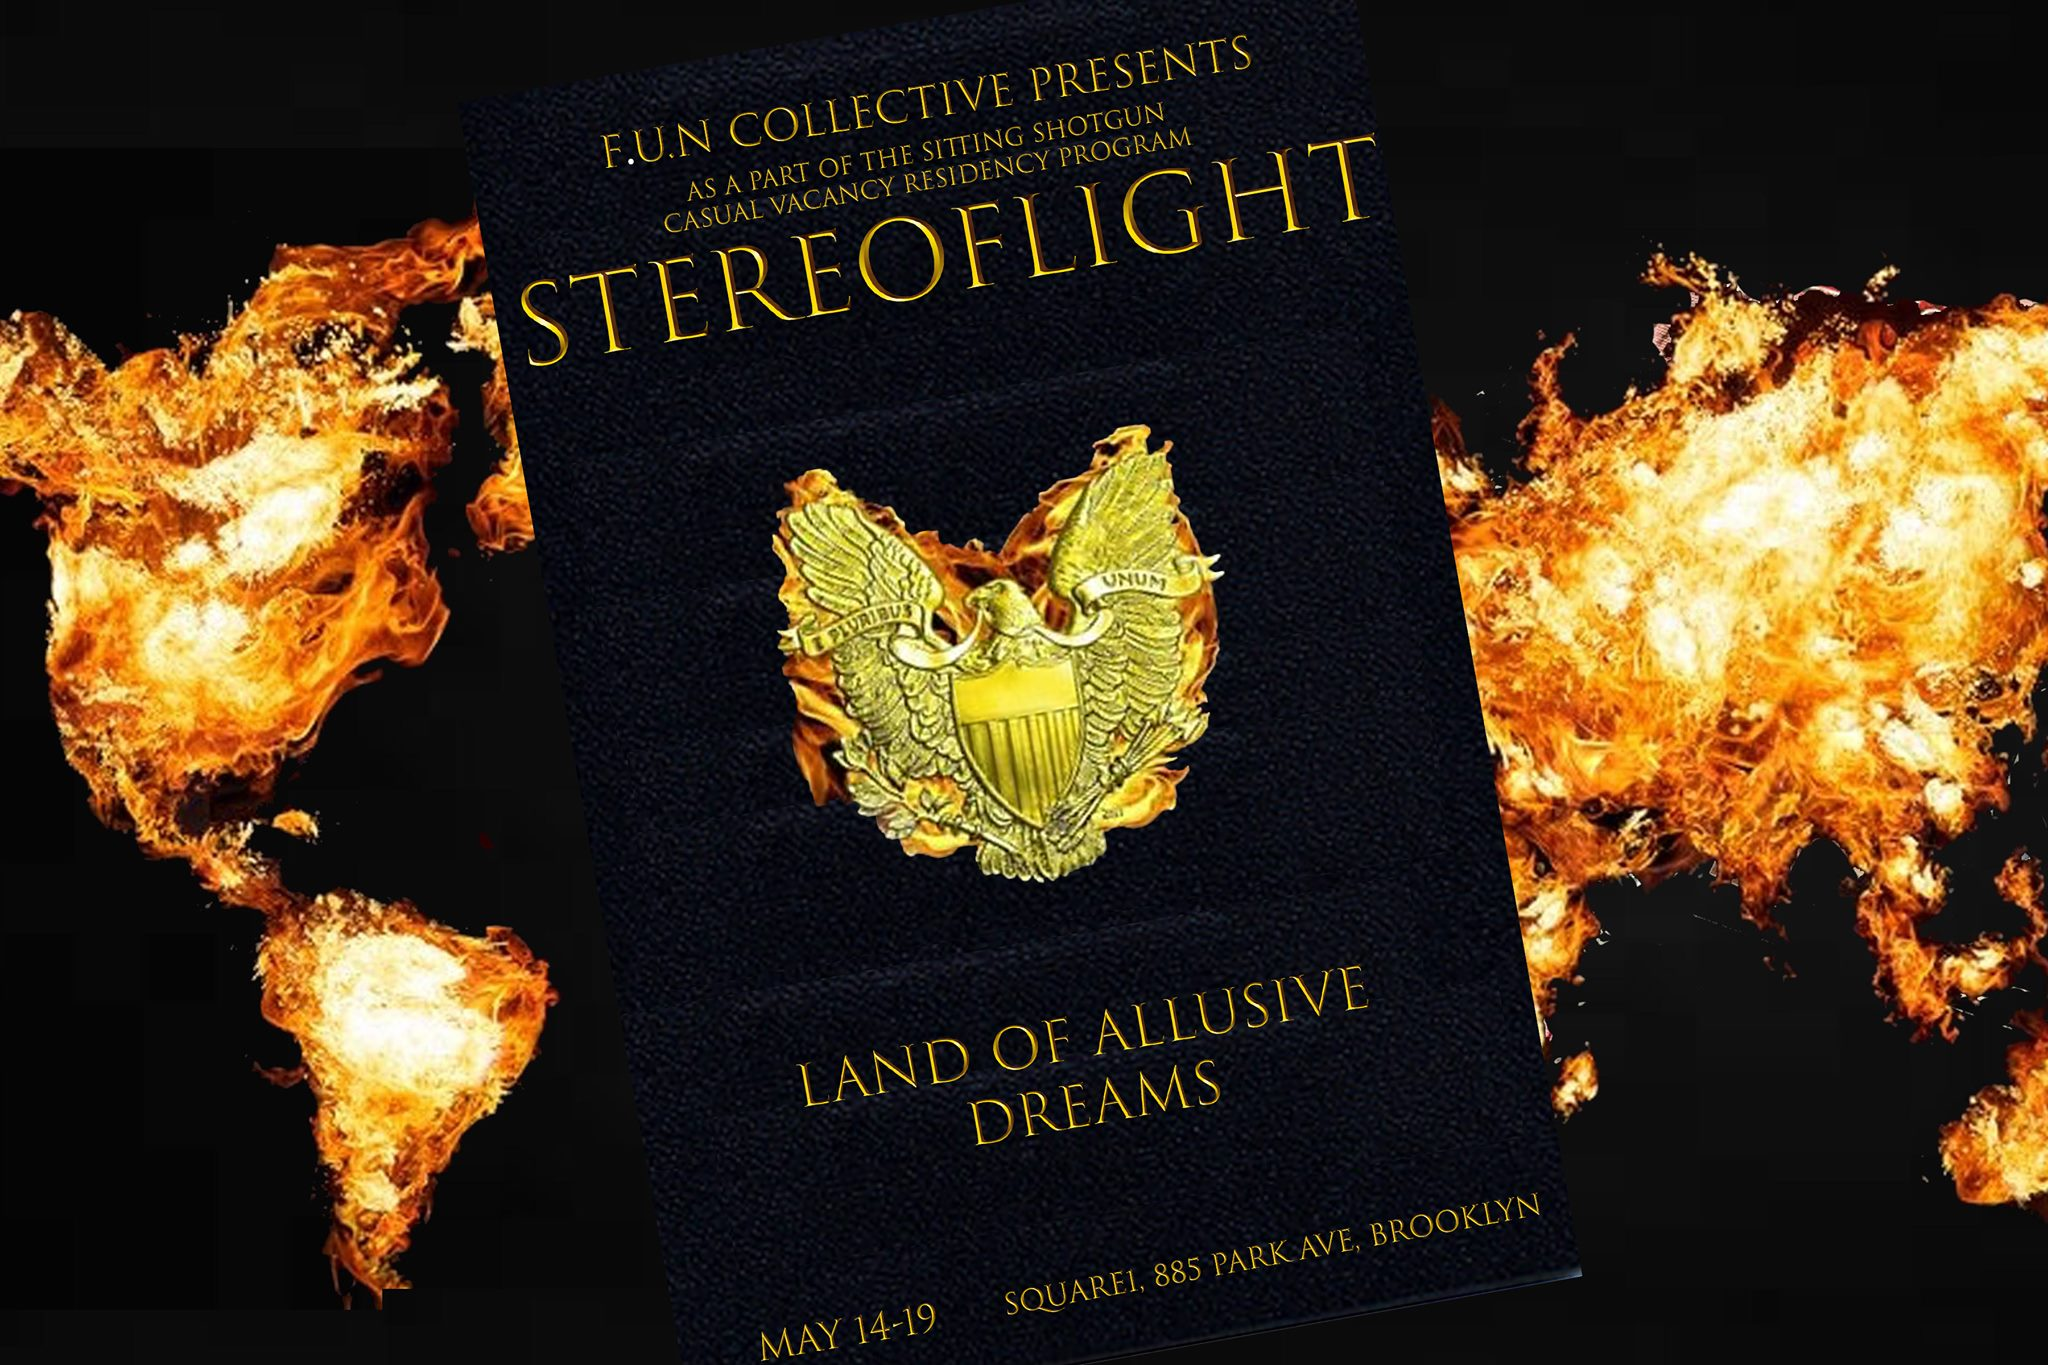 Stereoflight - May 14th-18th @ 8pm, May 19th @ 6pmSitting Shotgun - 885 Park Ave, BKA project aimed at highlighting the lack of mobility that the US immigration system presses on newcomers while we manage to navigate, struggle and celebrate our conflicting identities.https://www.facebook.com/events/699061603844502/